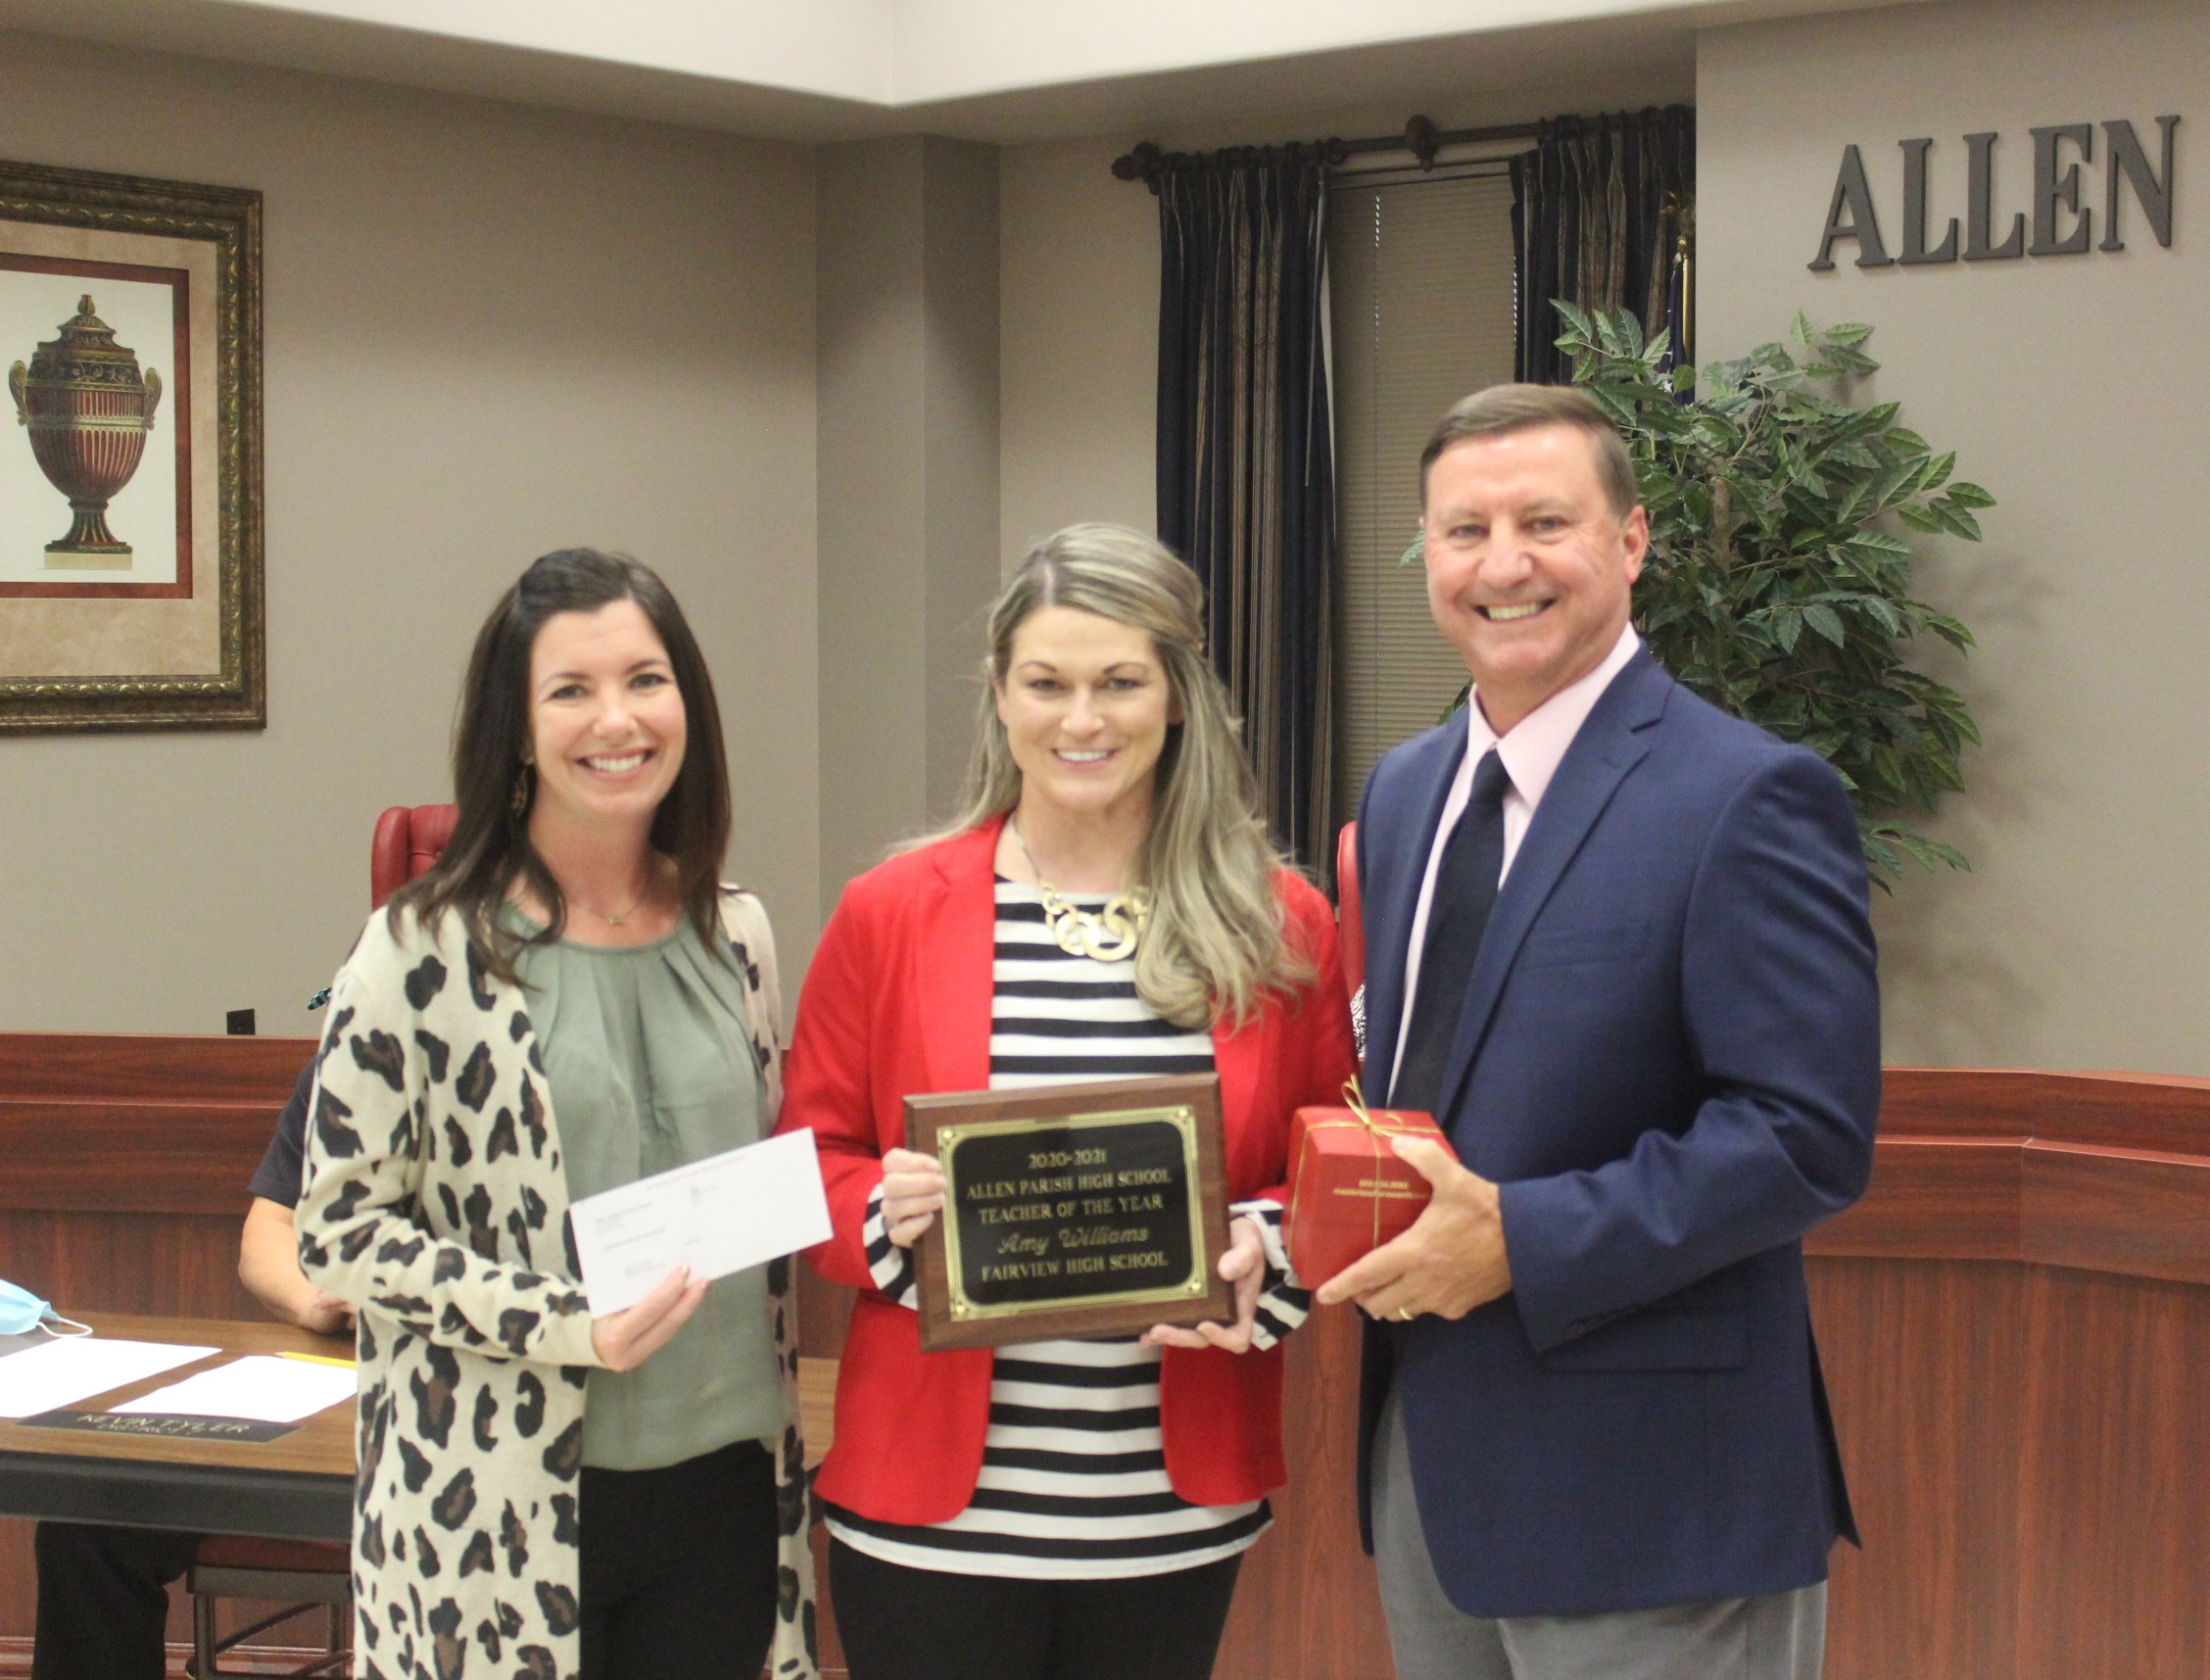 20-21 High School Teacher of the Year Amy Williams, c, with FHS Principal Jade Welch, l, and Superintendent Kent Reed, r